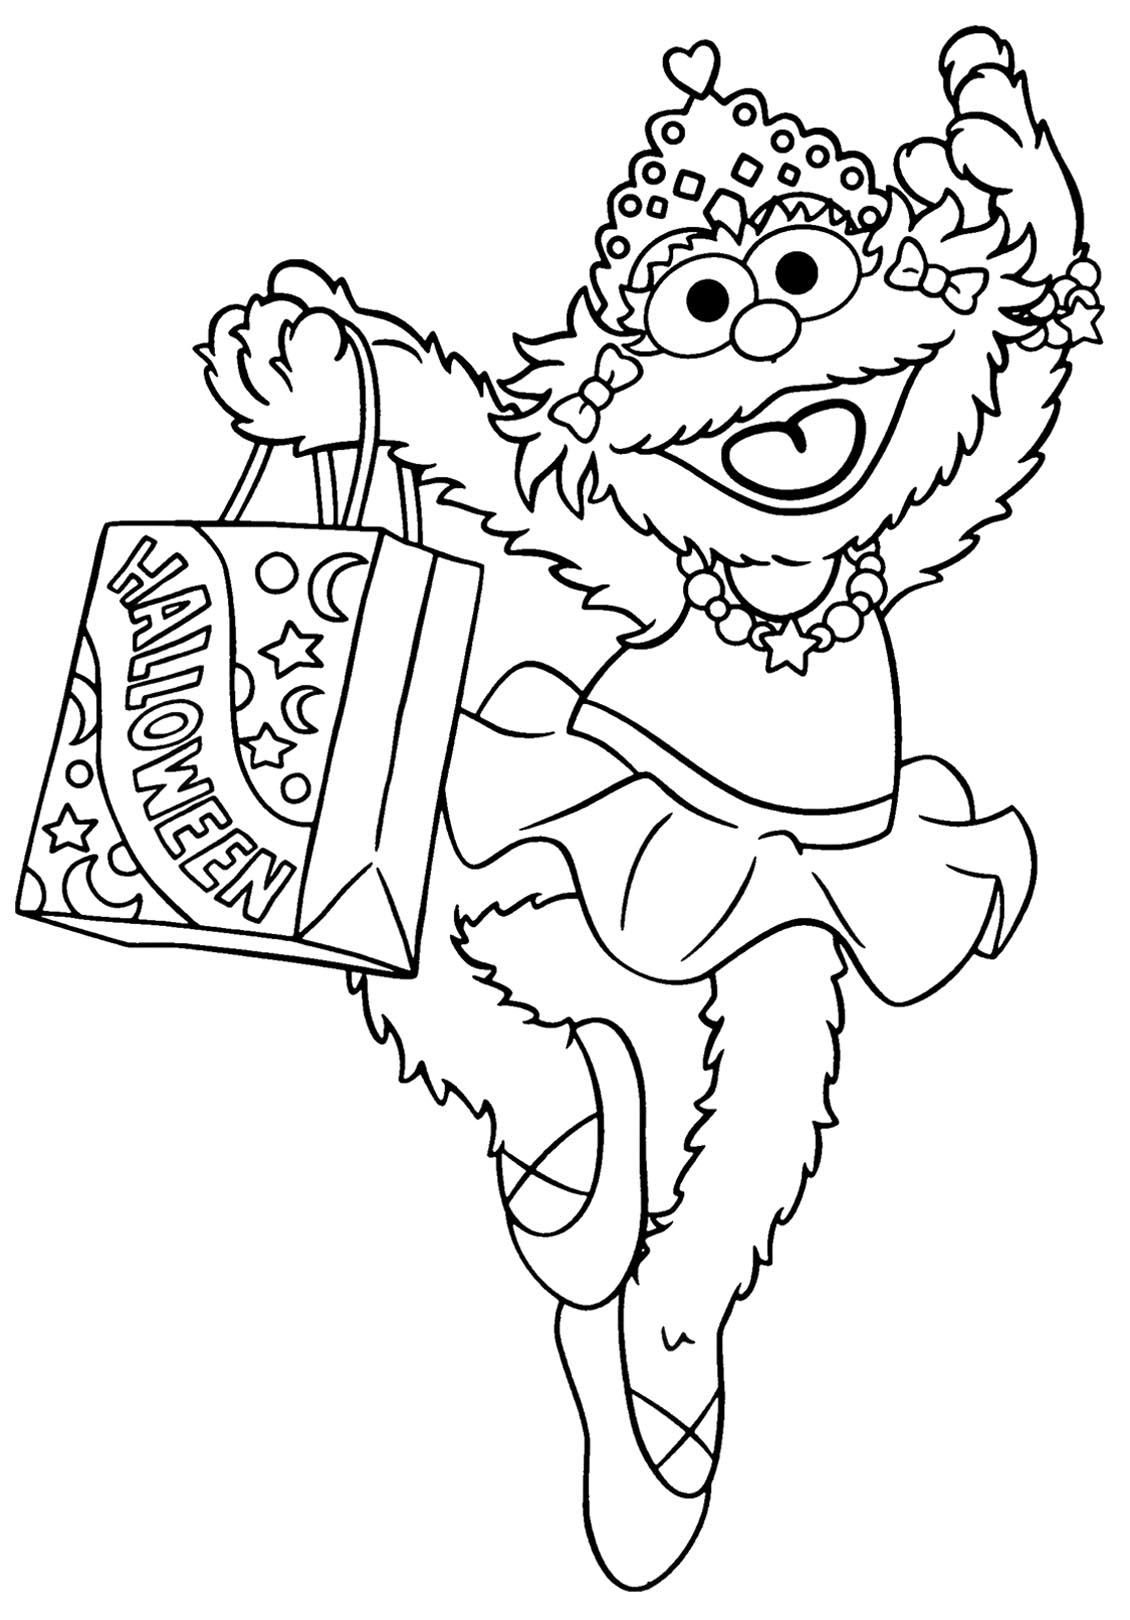 coloring pages of sesame street characters sesame street coloring pages count google search my characters sesame of pages coloring street